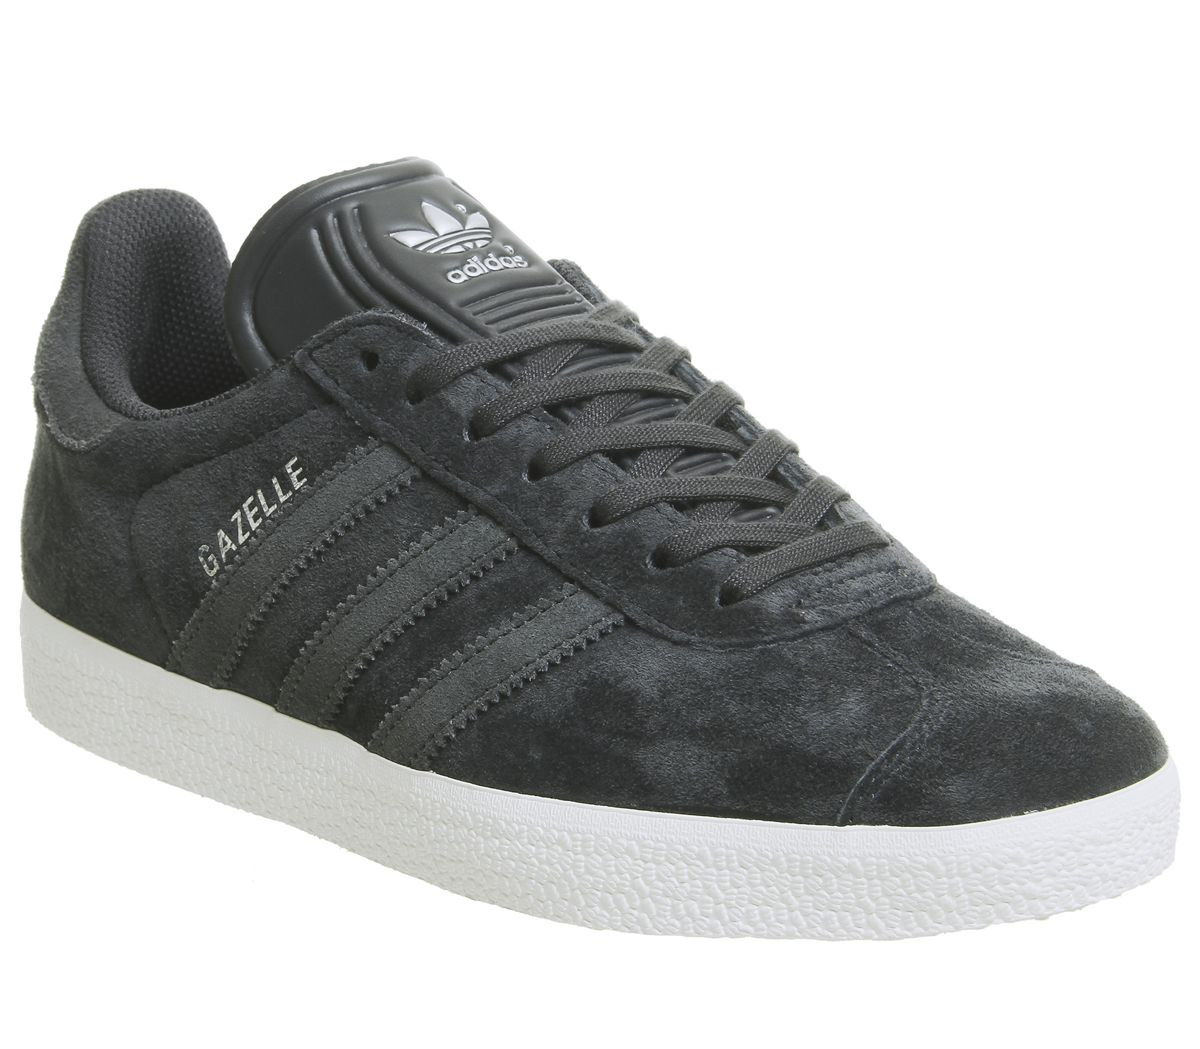 Details about Mens Adidas Gazelle Trainers Night Grey Carbon Silver  Exclusive Trainers Shoes